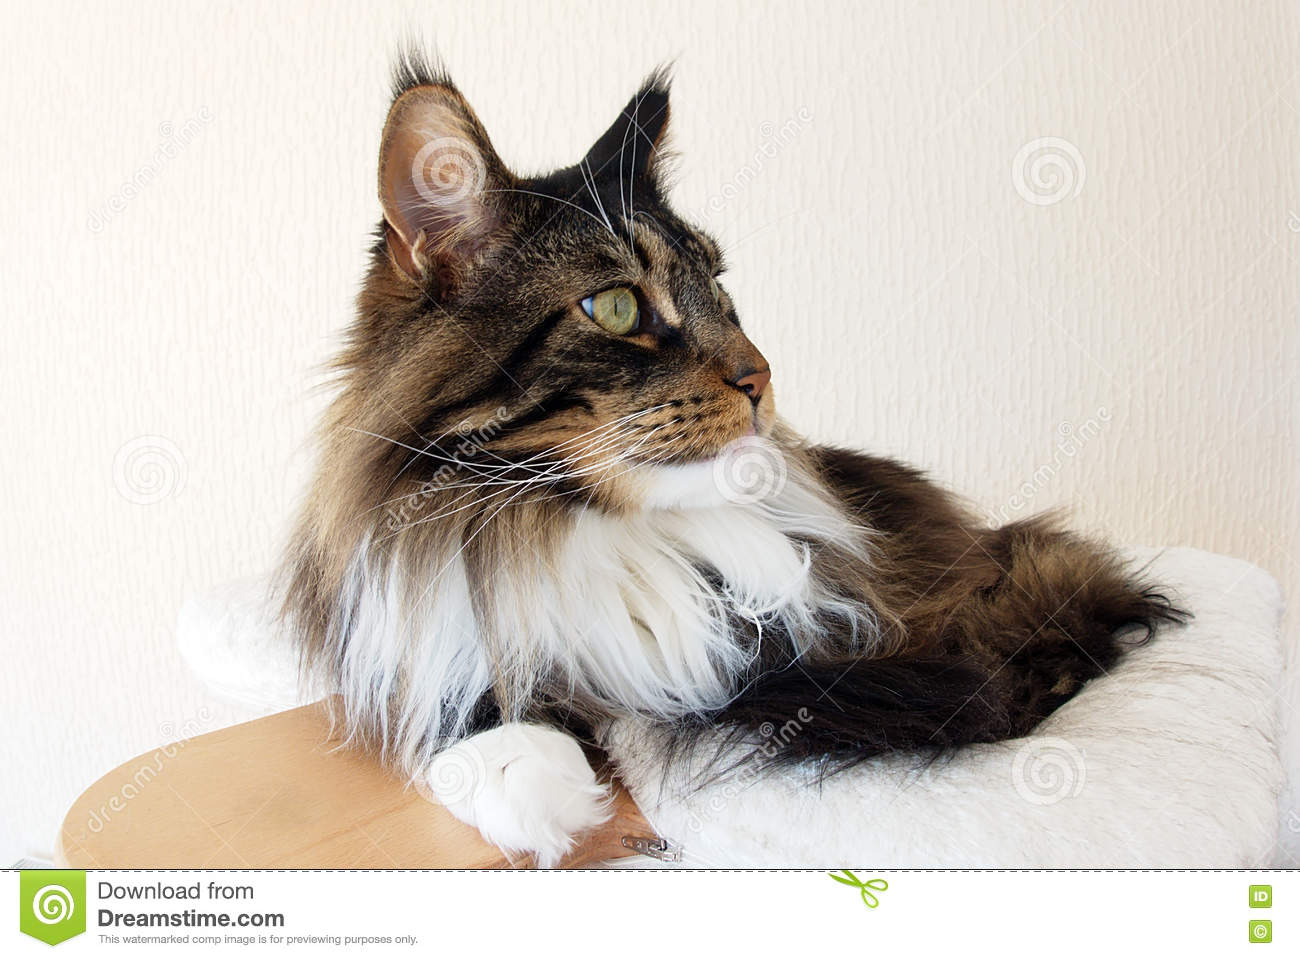 Profile of a Brown tabby with white Maine Coon cat